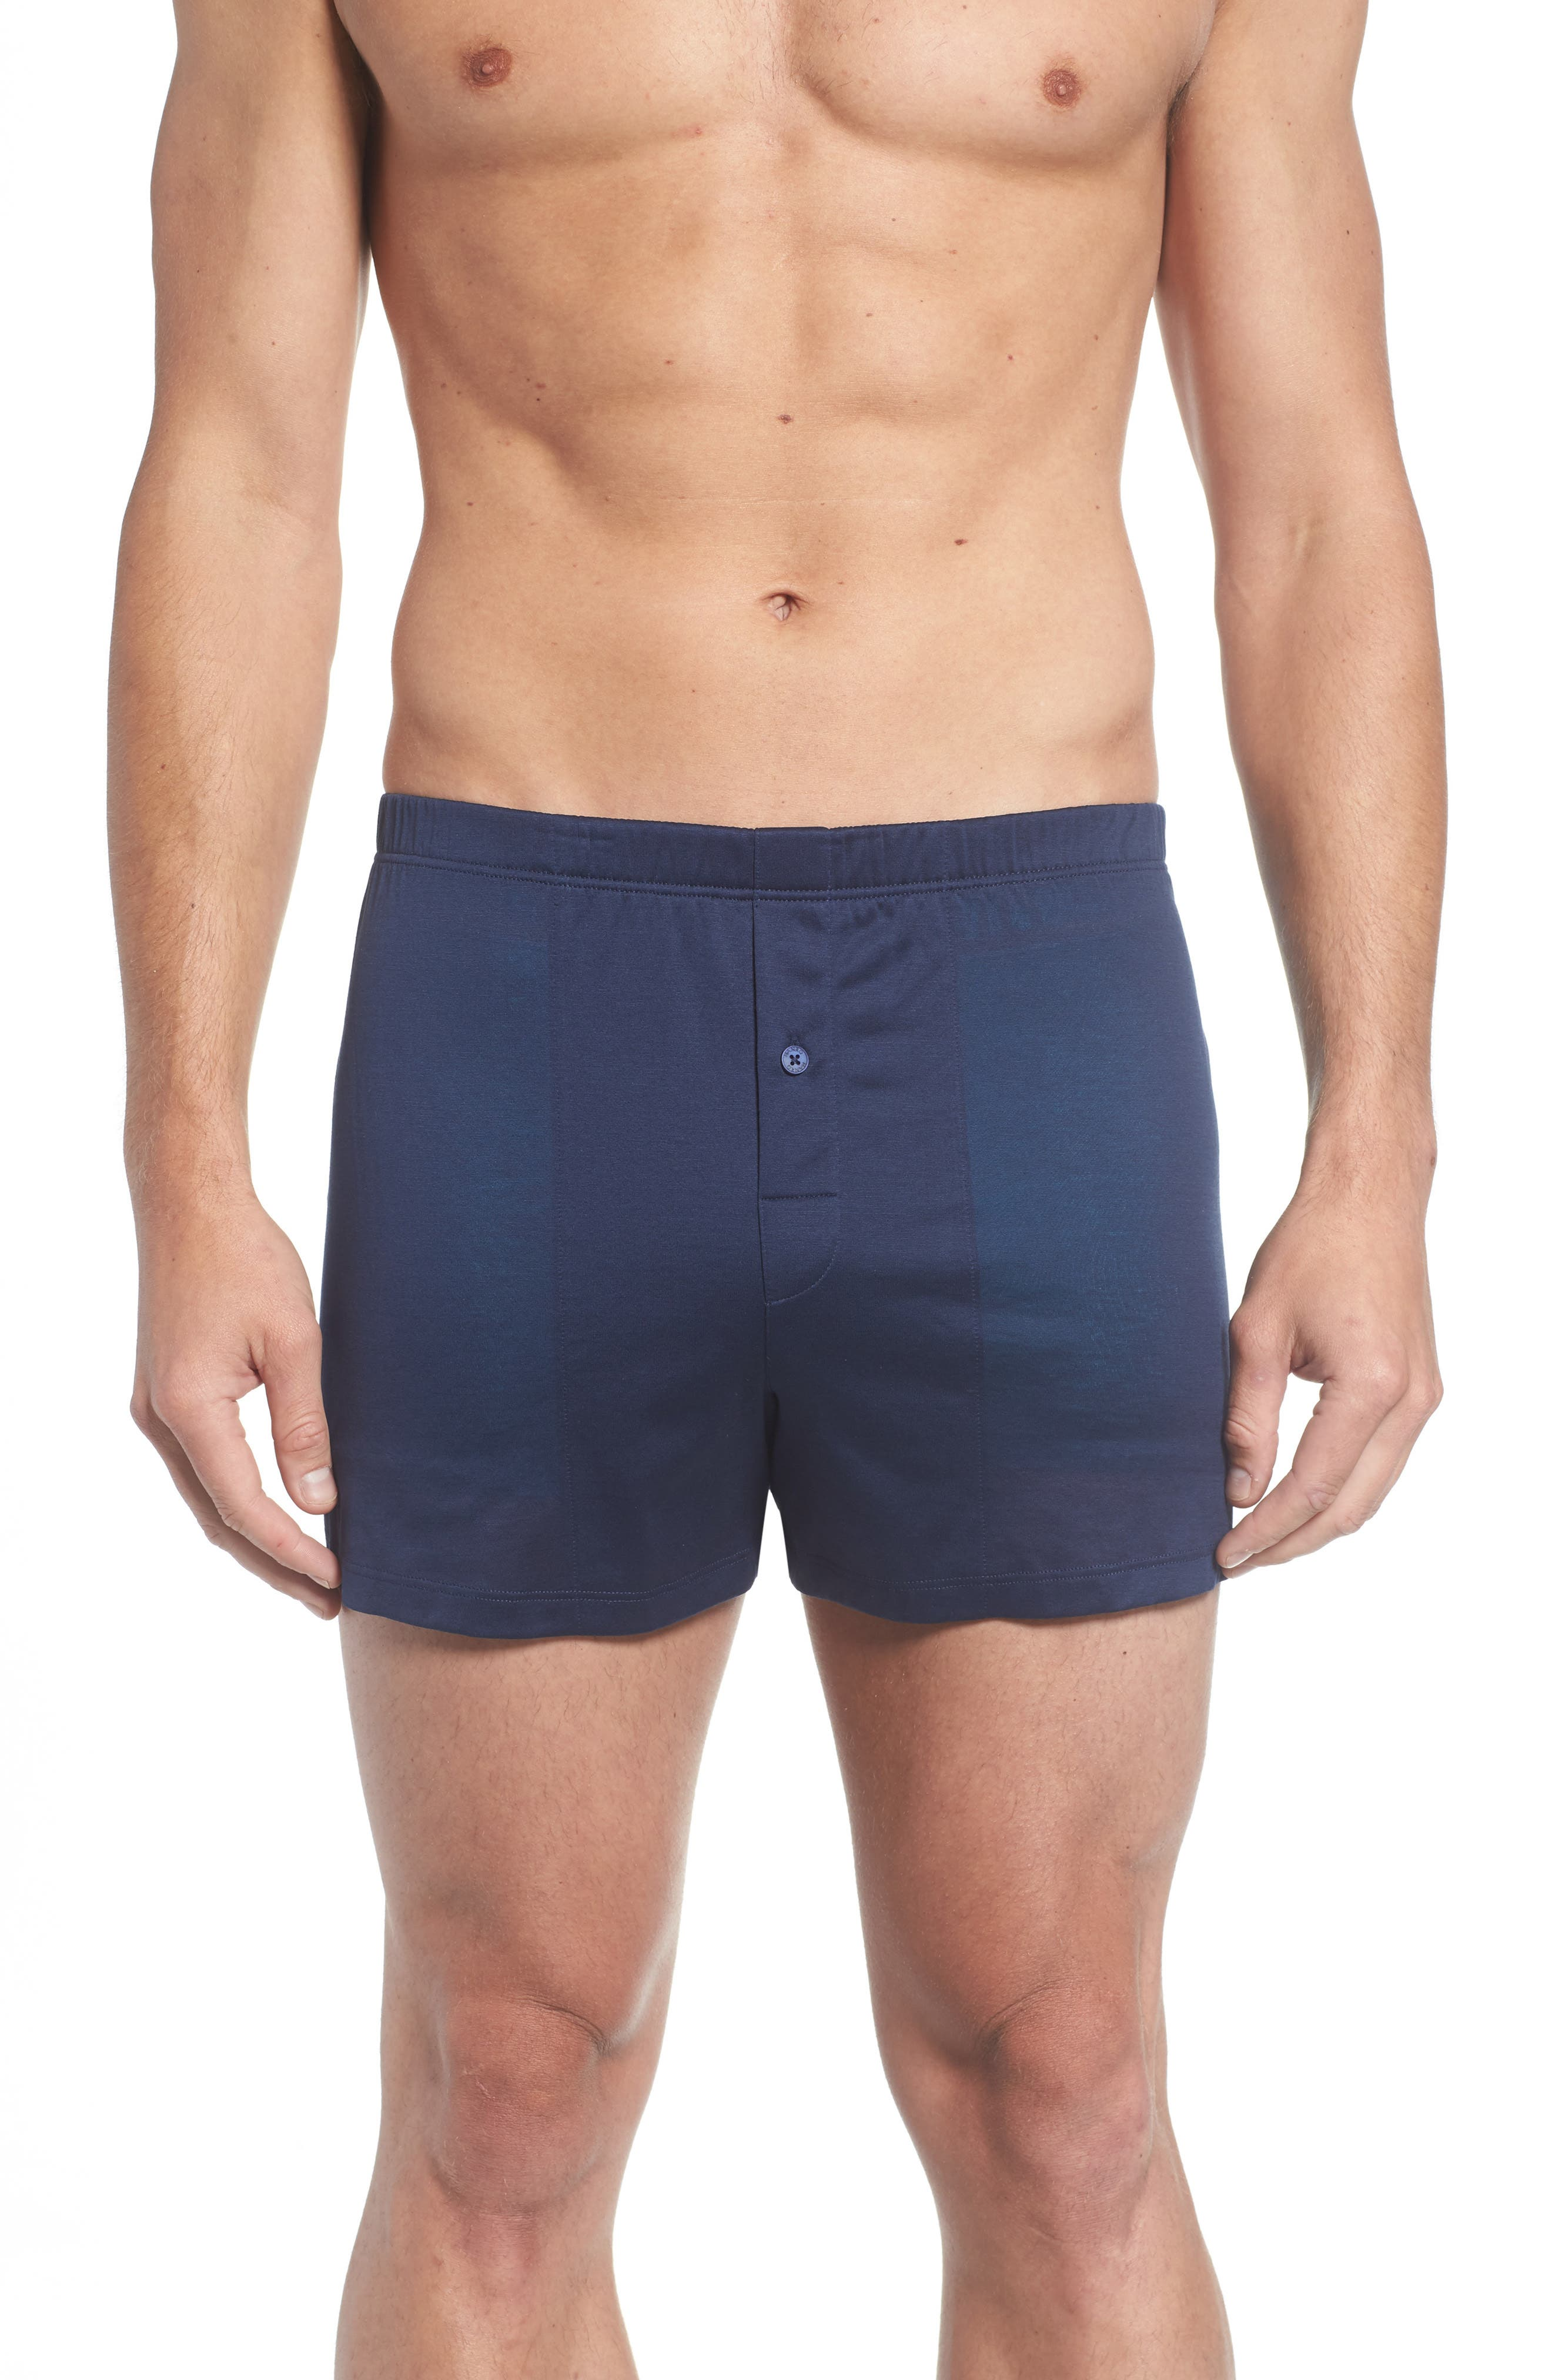 Cotton Sporty Knit Boxers,                         Main,                         color, Midnight Navy